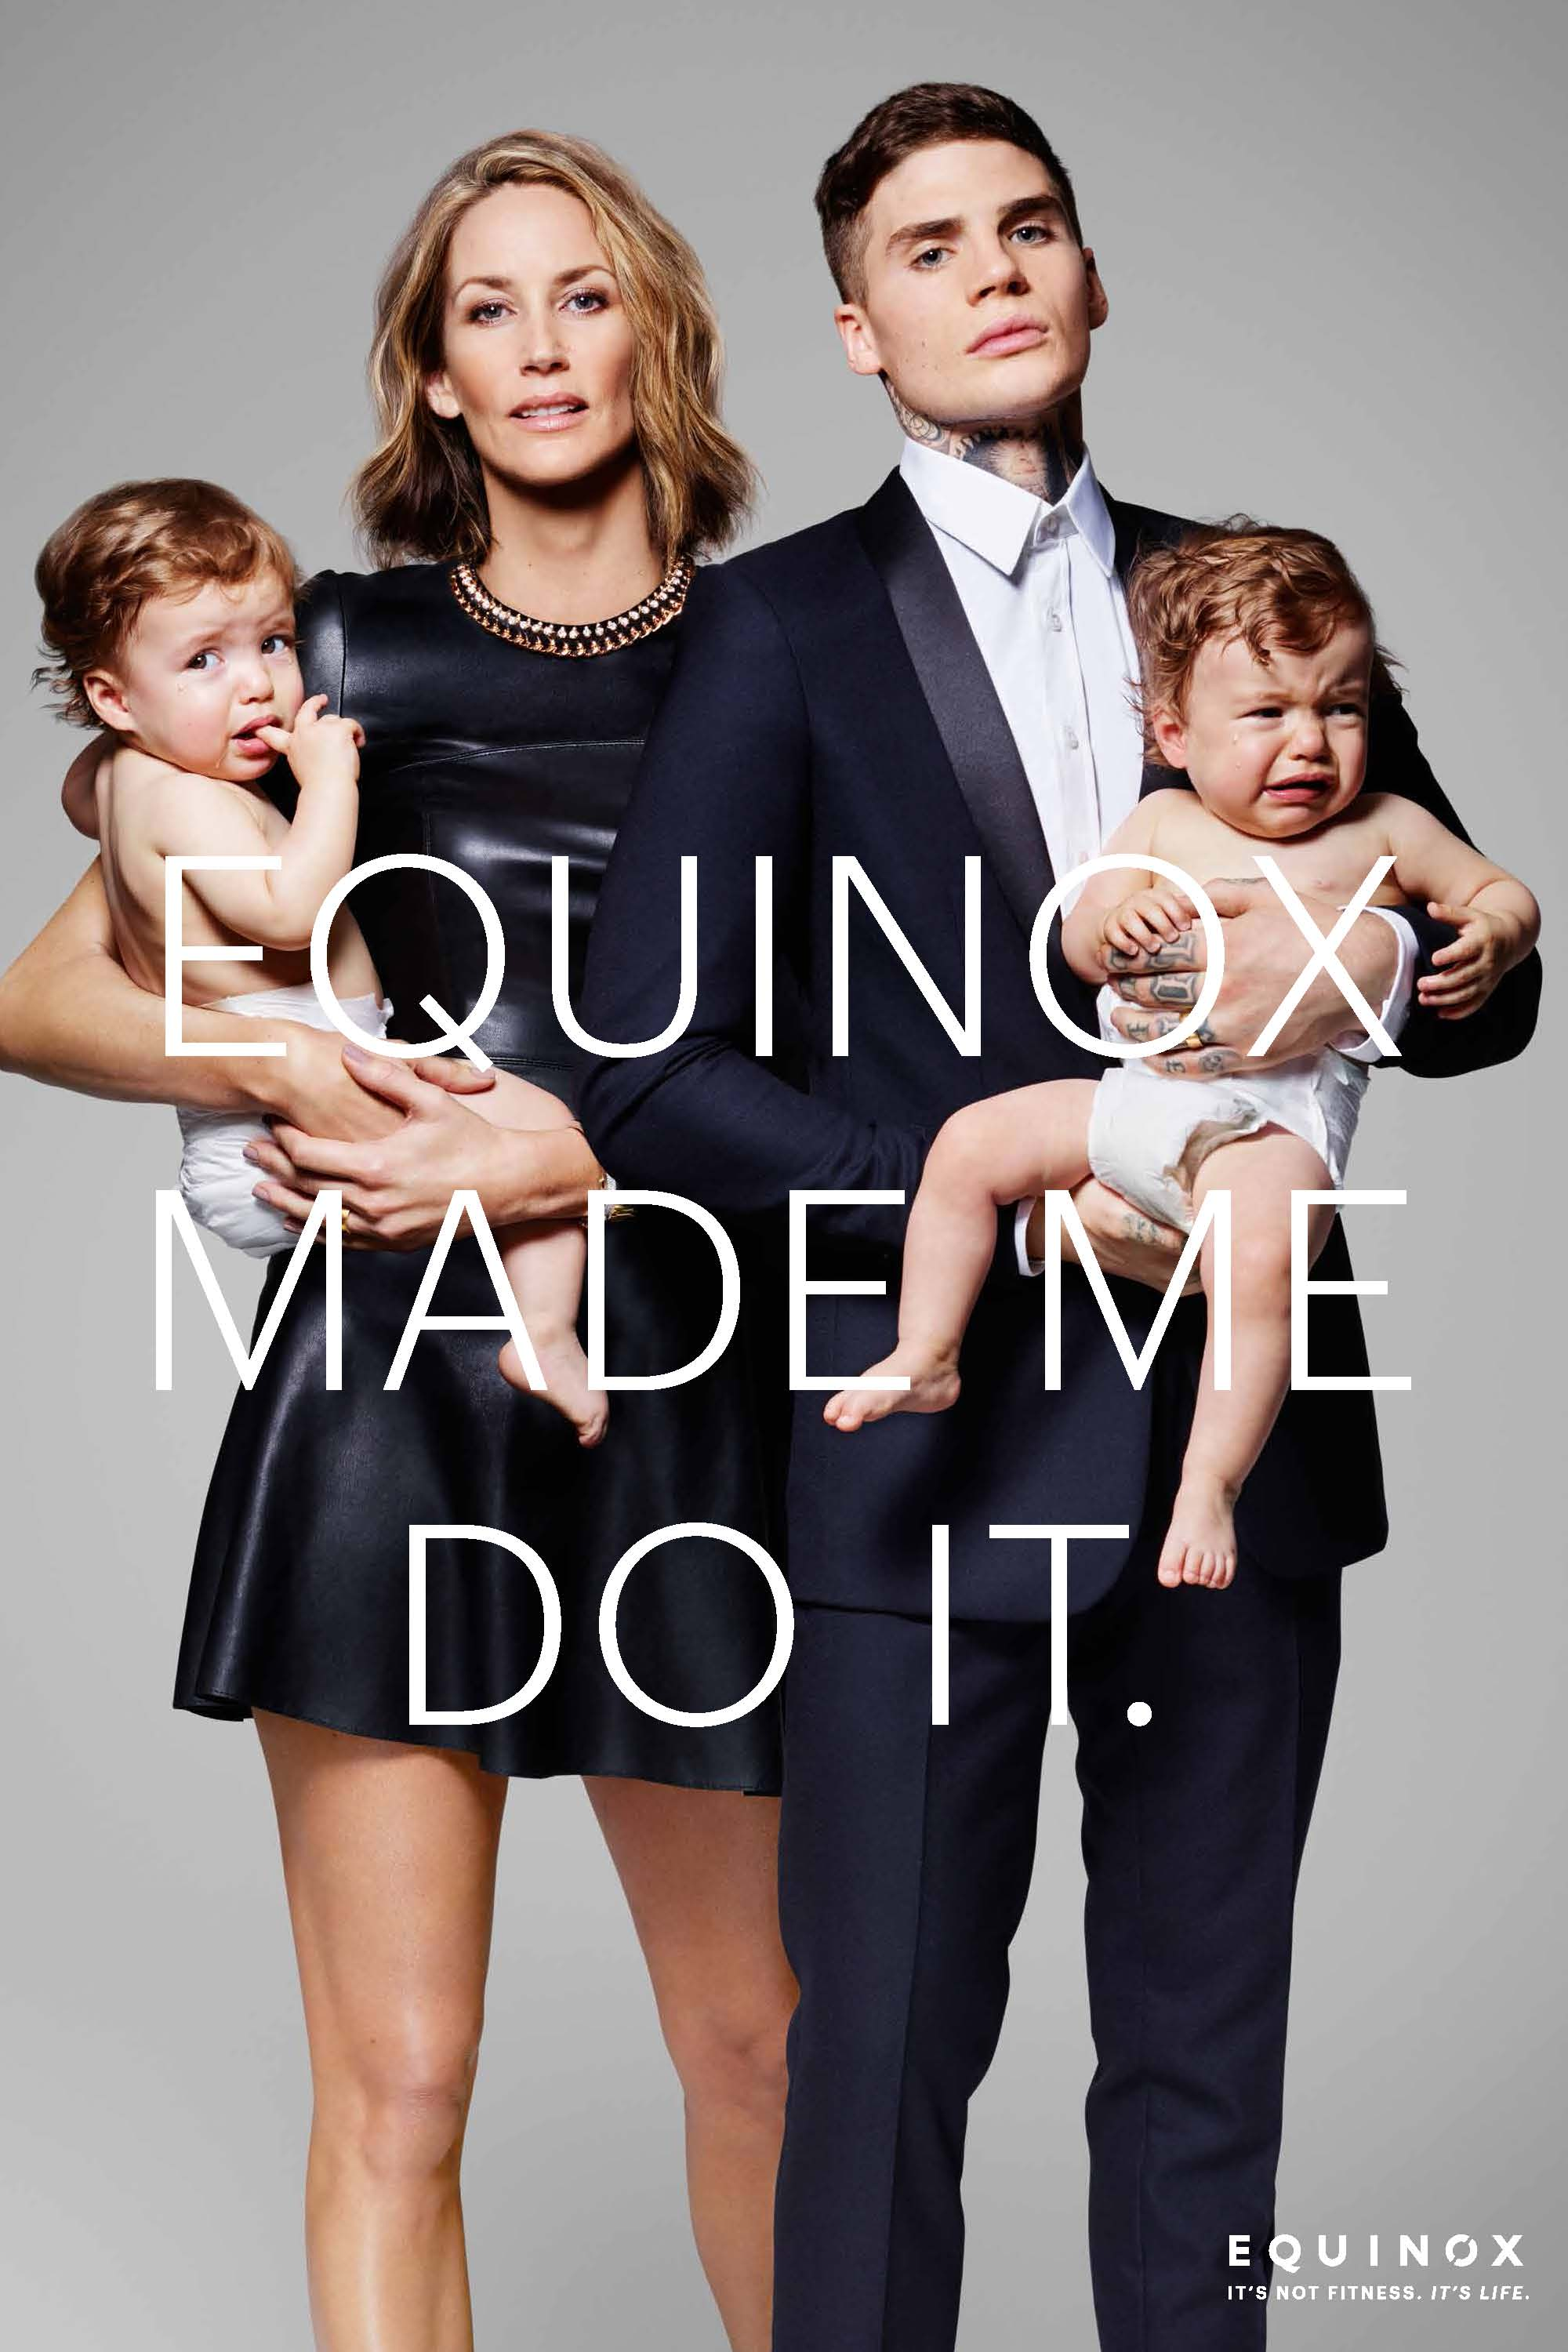 Equinox ad campaign 2015 Equinox Made Me Do It by Rankin 01